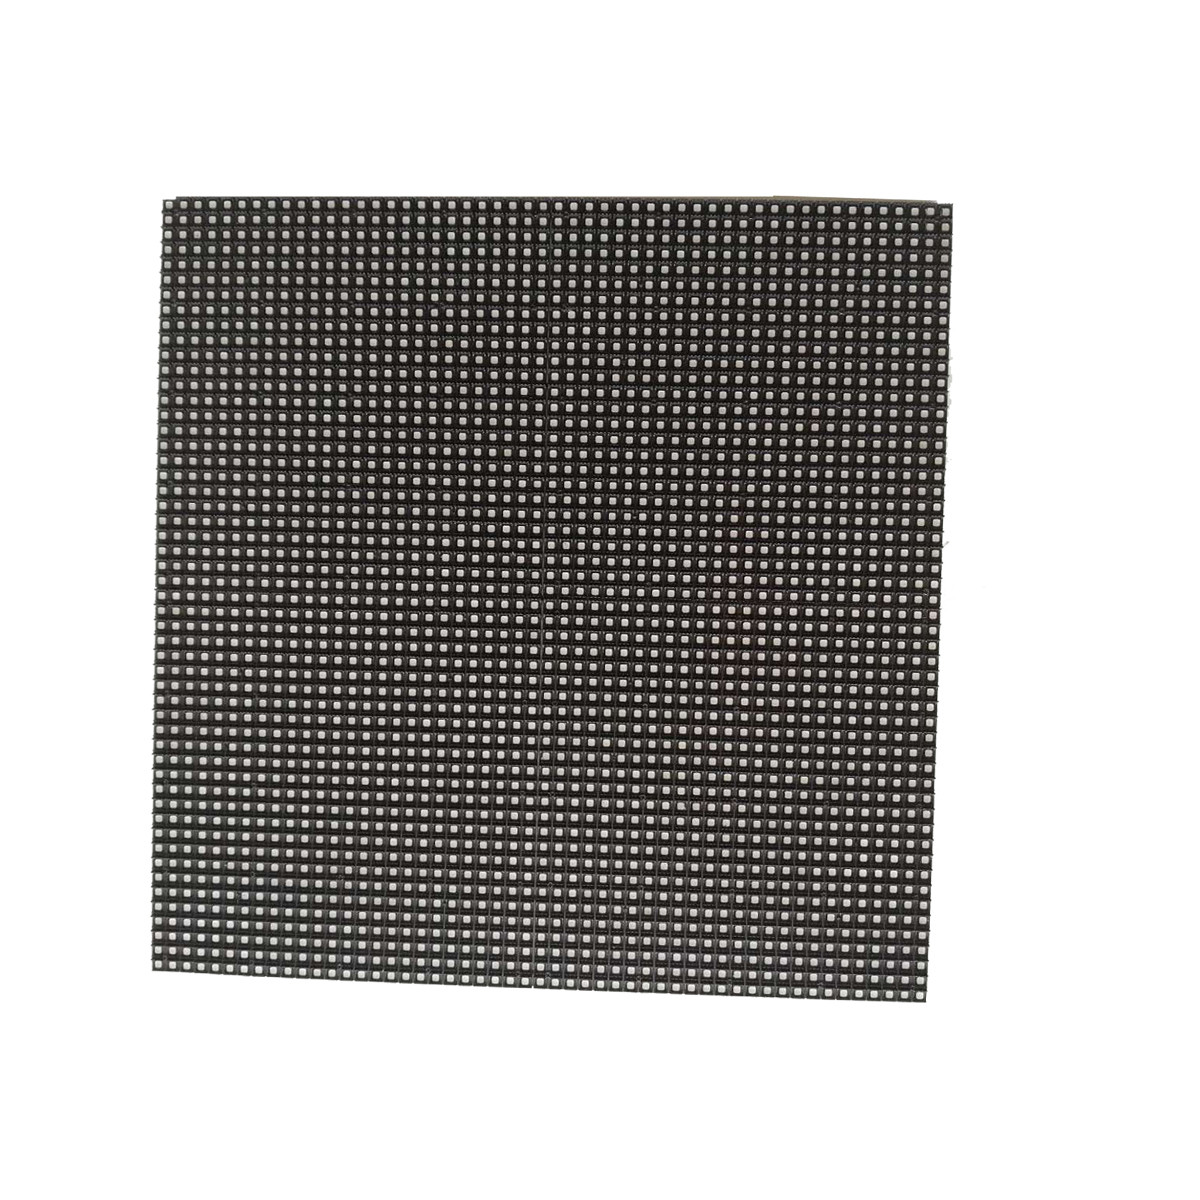 P4.81 Outdoor SMD LED Display Module 250*250mm SMD1921 5000cd/㎡ Brightness 1920Hz High Refresh